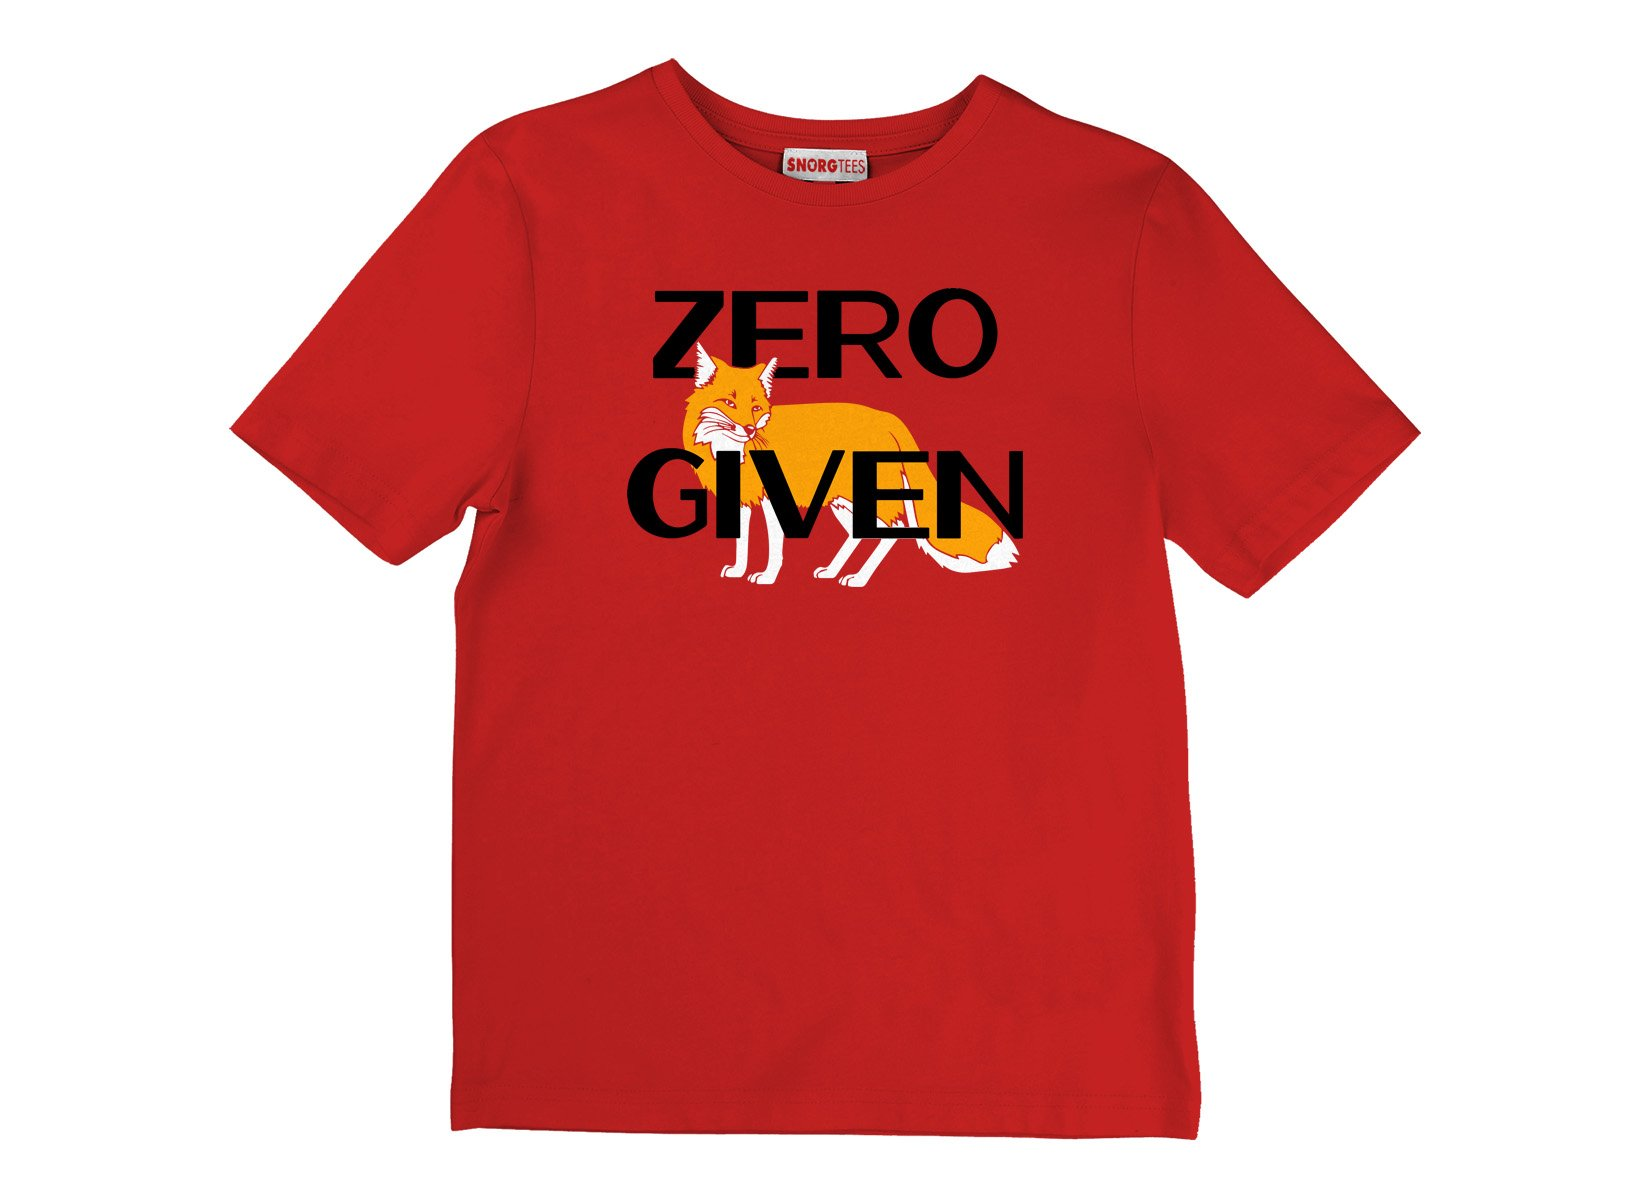 Zero Fox Given on Kids T-Shirt